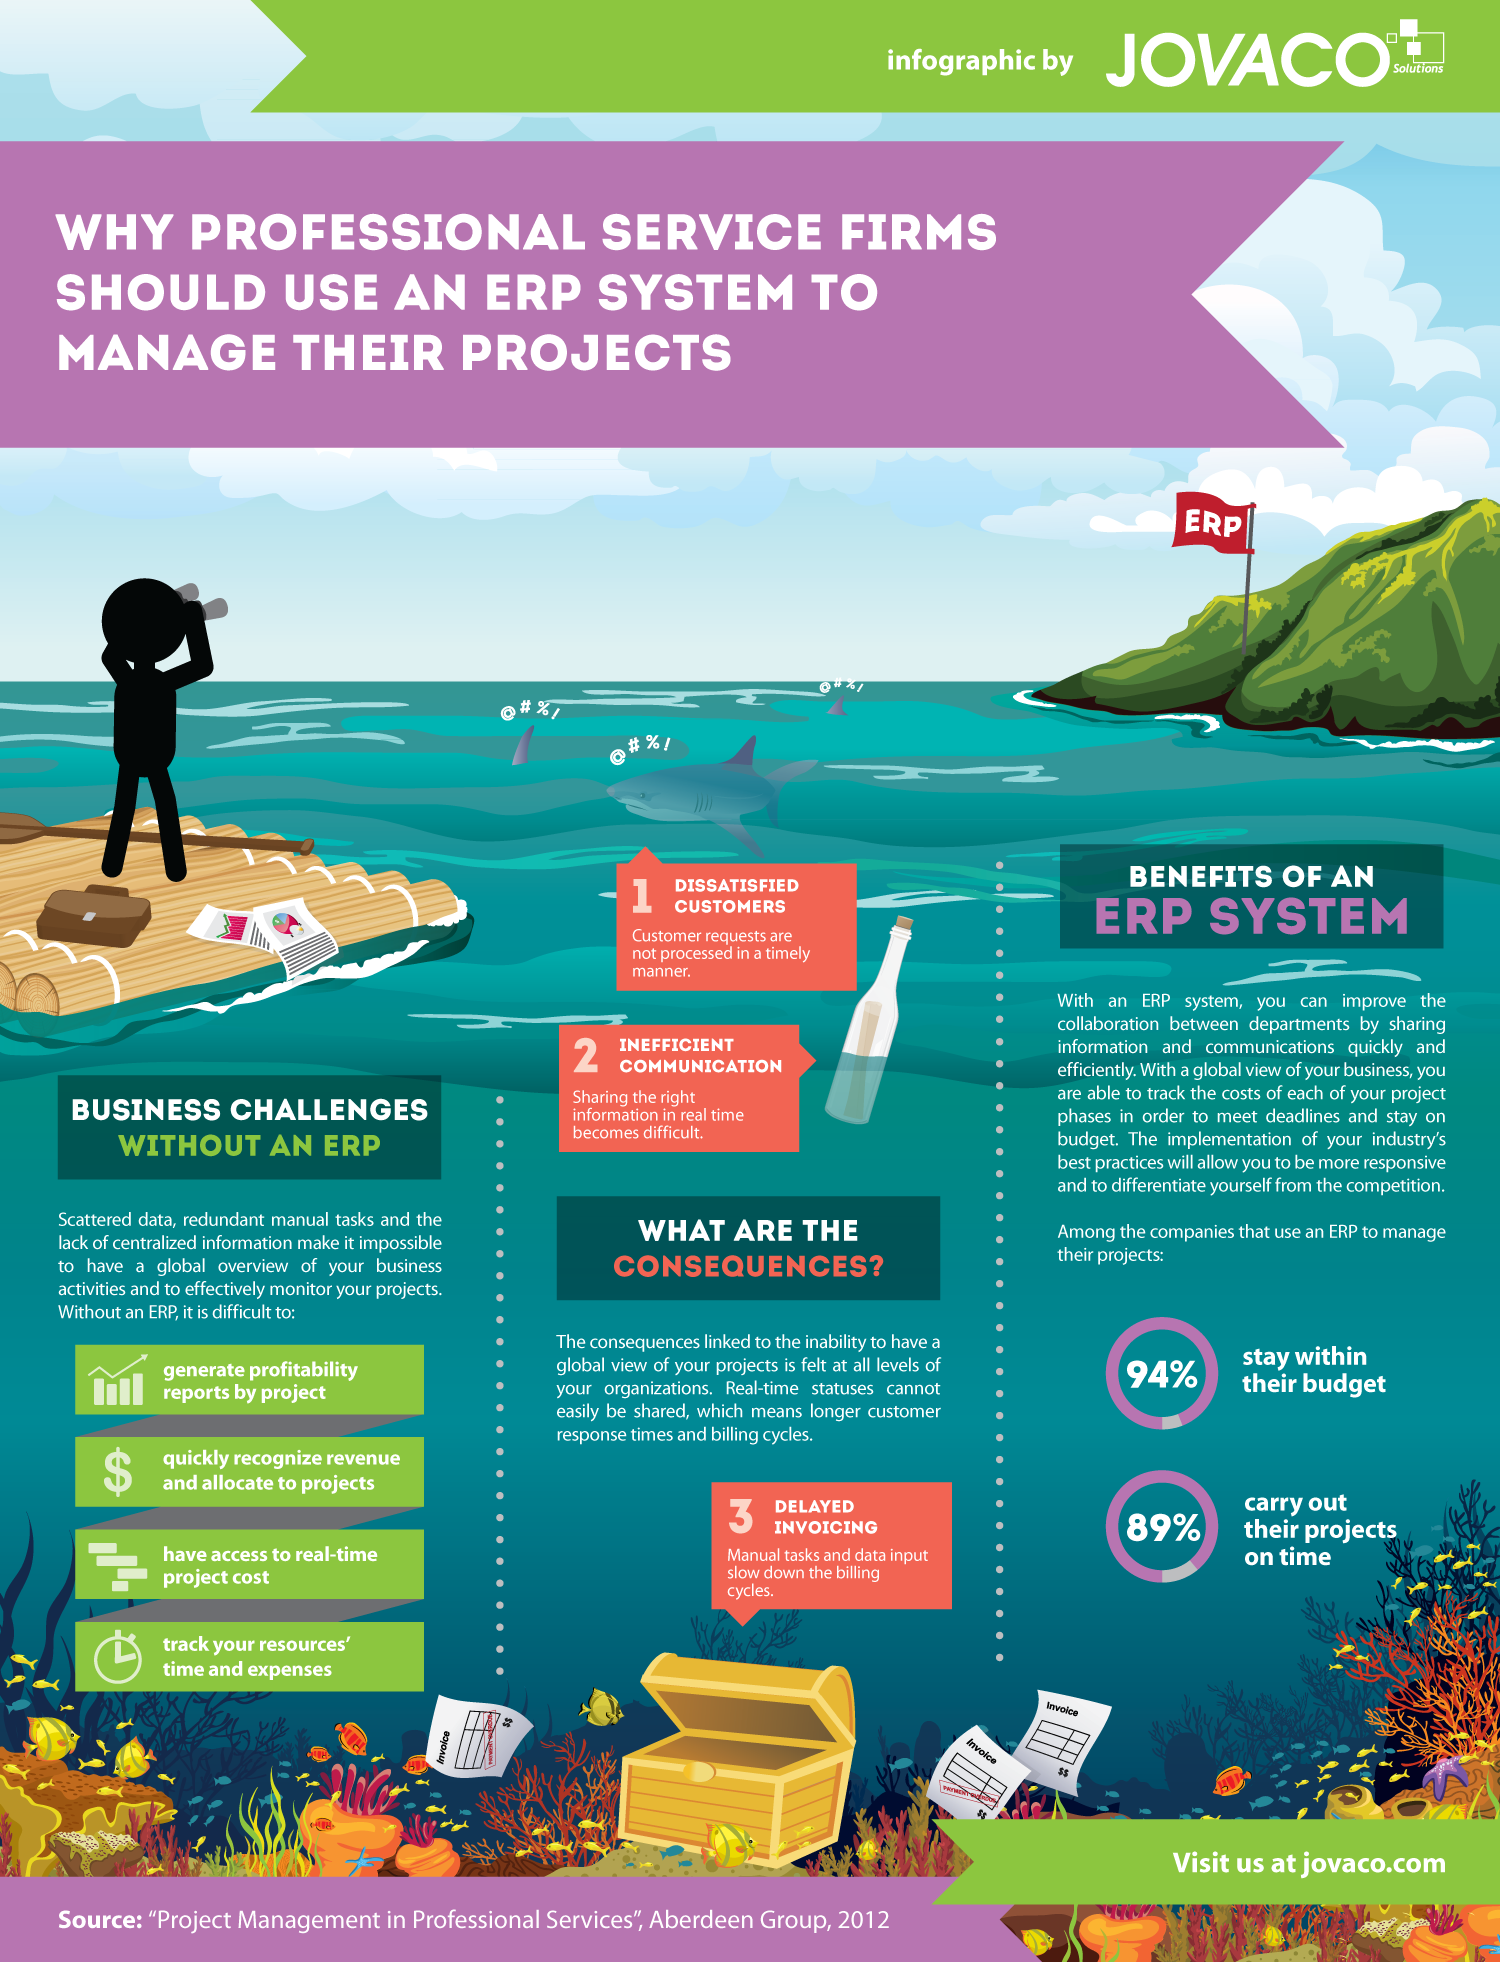 jovaco-solutions-infographic-why-use-erp-manage-projects